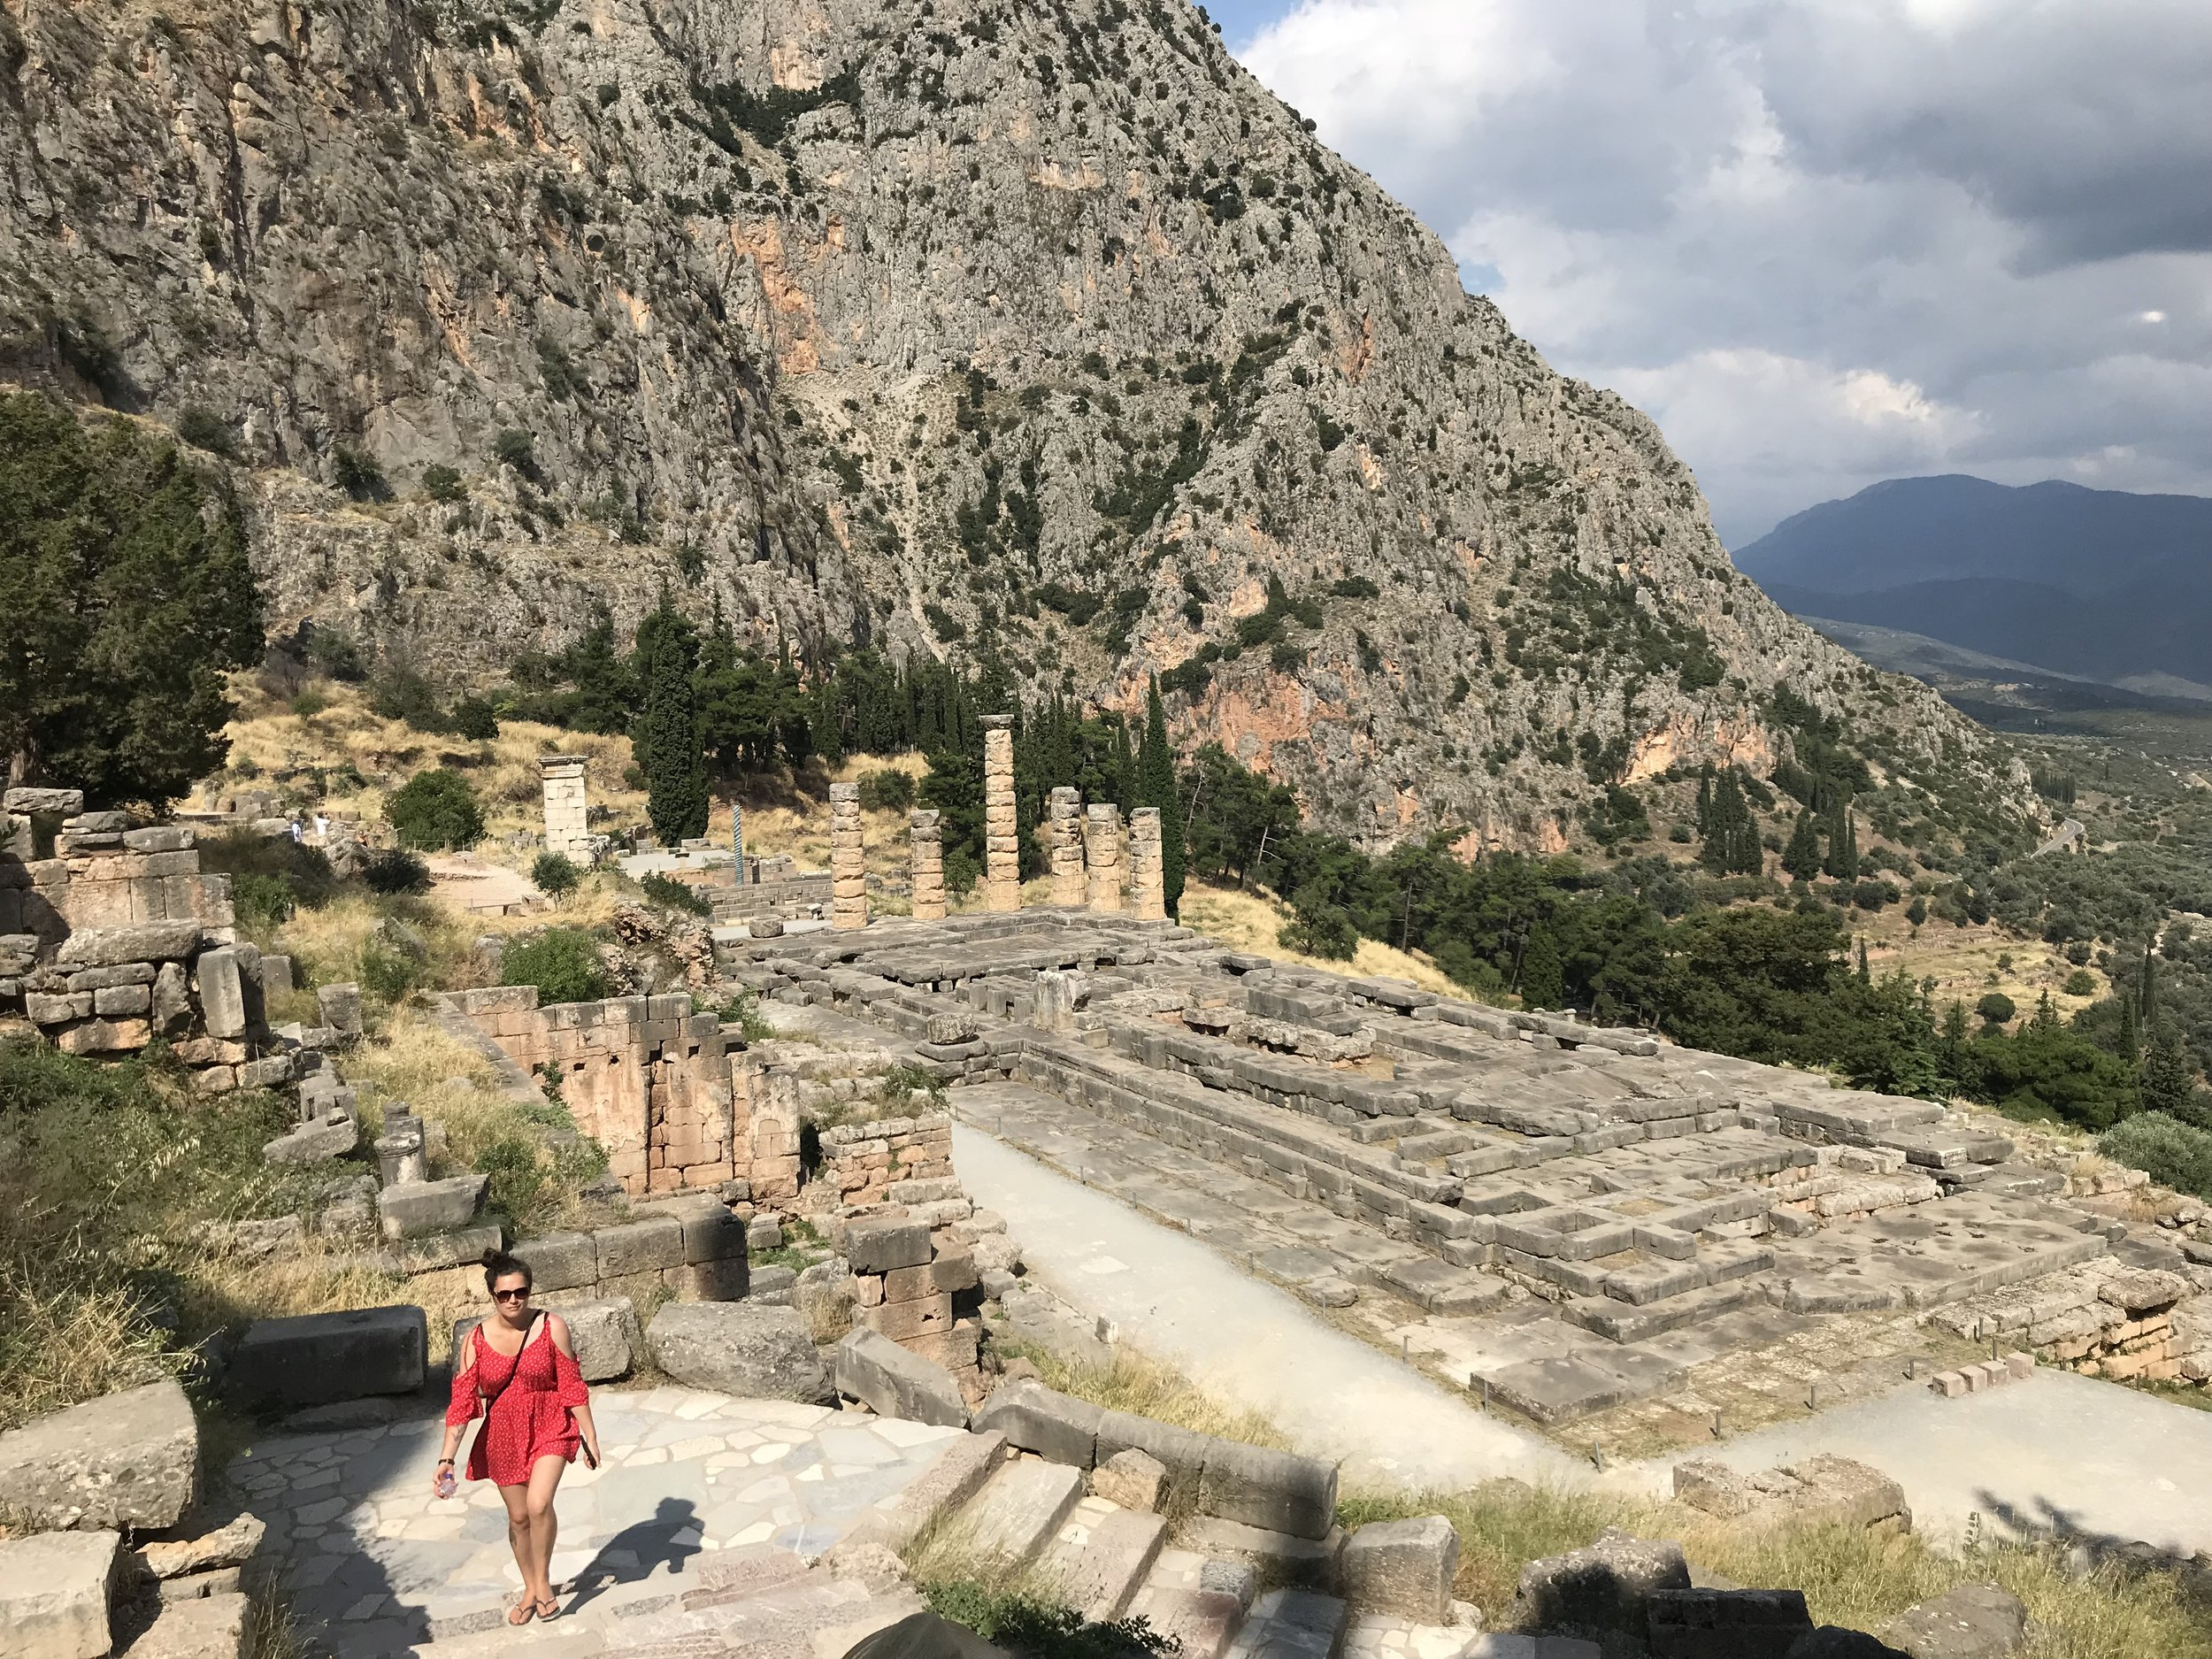 exploring the ruins at delphi